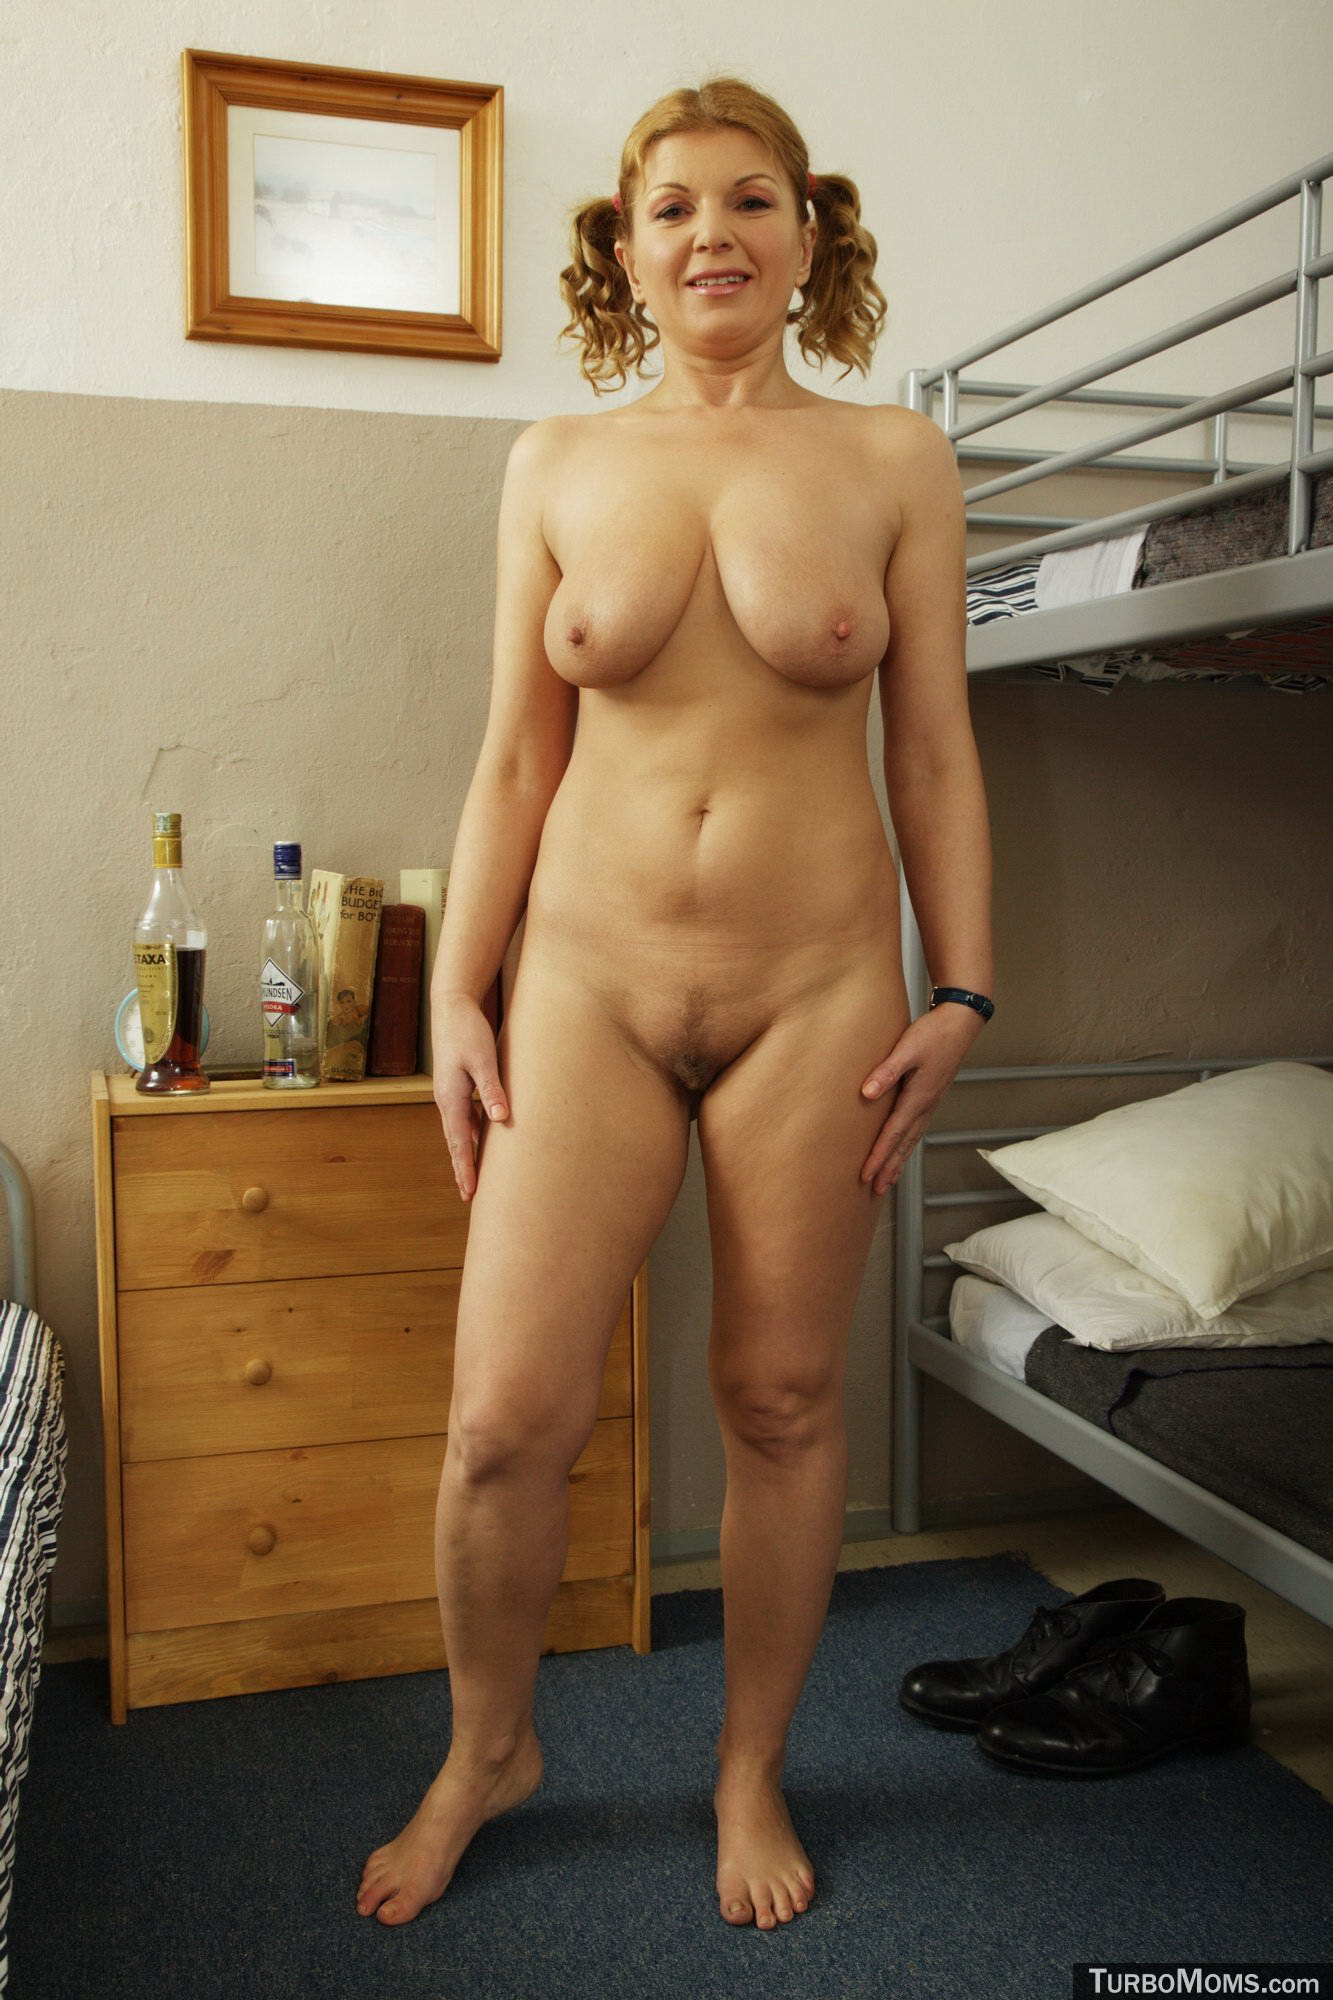 Hot mommy 4 - 3 part 6